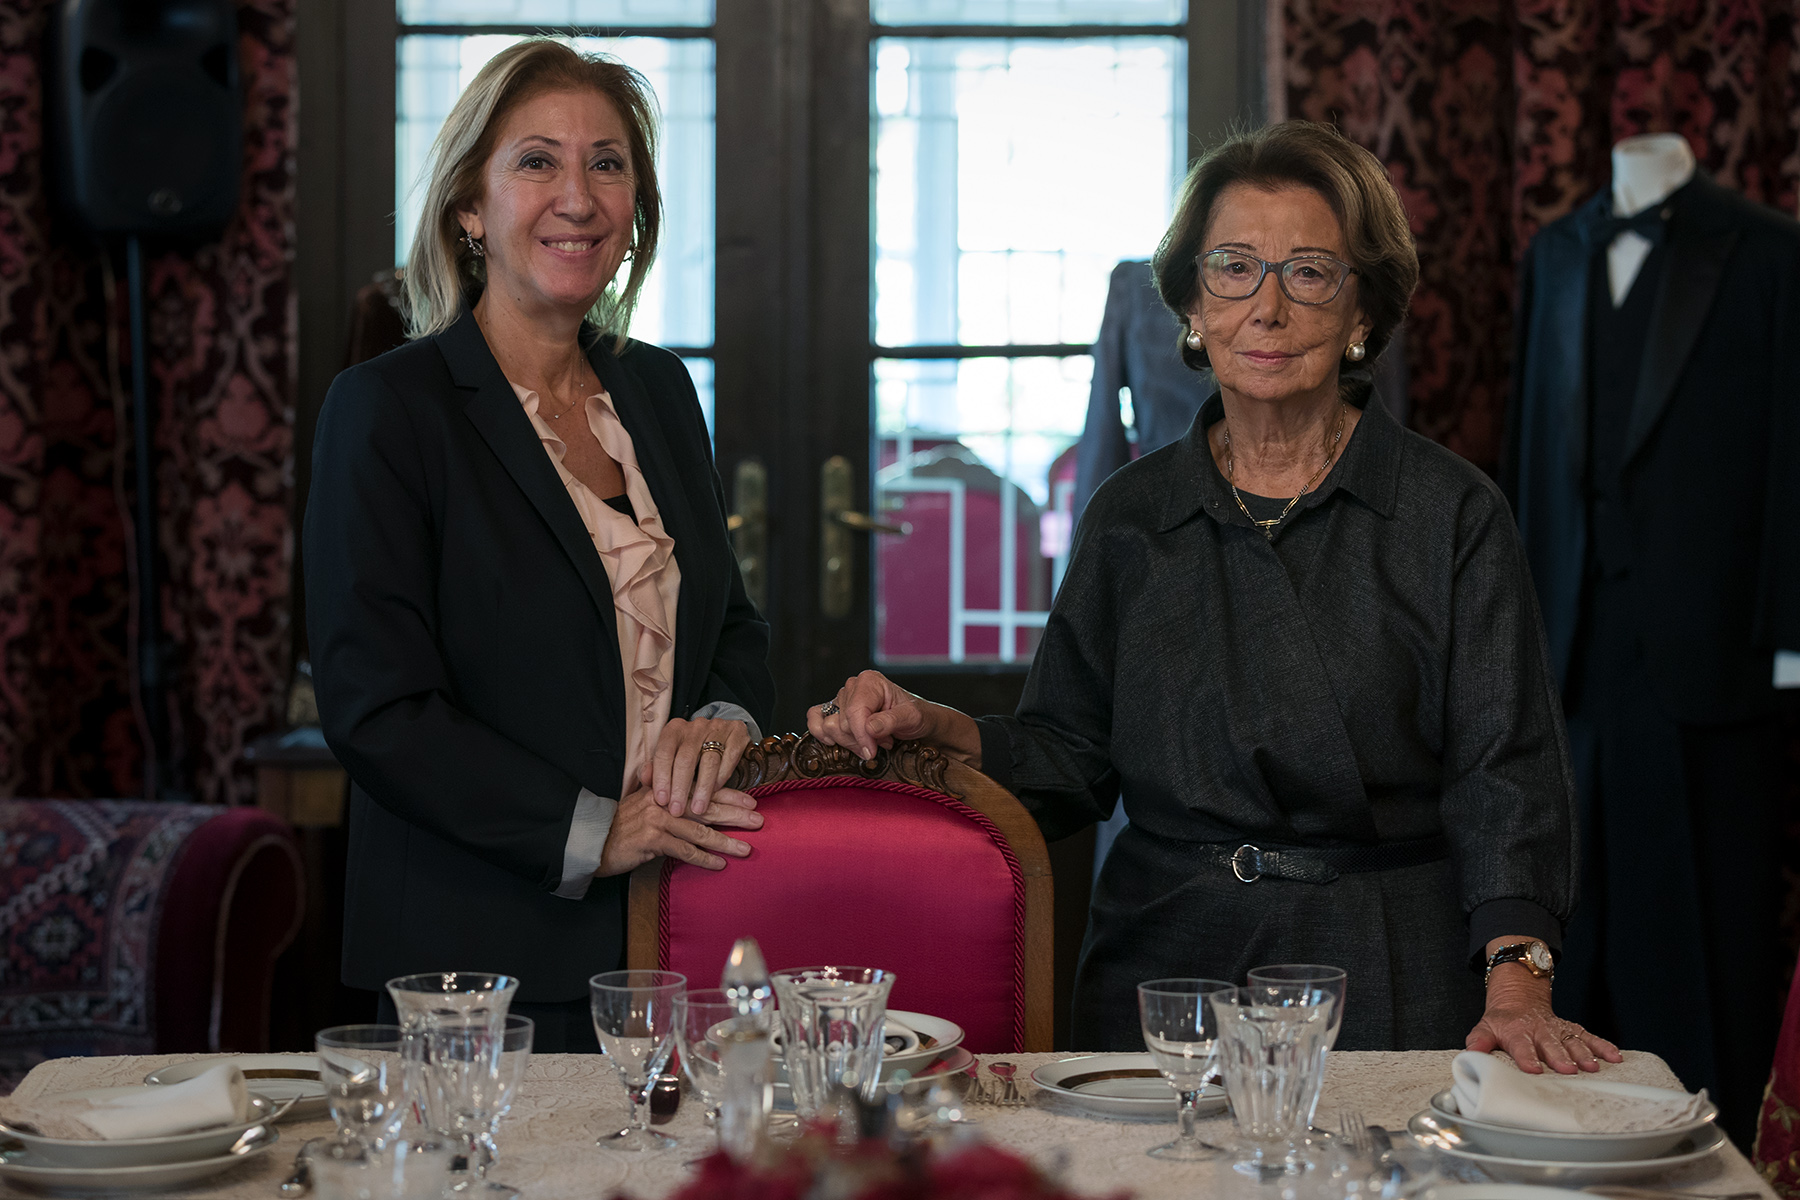 Turkey, 2017 - Özden Toker (right), daughter of İsmet İnönü, Ataturk's right-hand and second president of the Turkish Republic and Gülsün Bilgehan, her own daughter, CHP deputy, parliamentary and member of the Parliamentary Assembly of the Council of Europe.